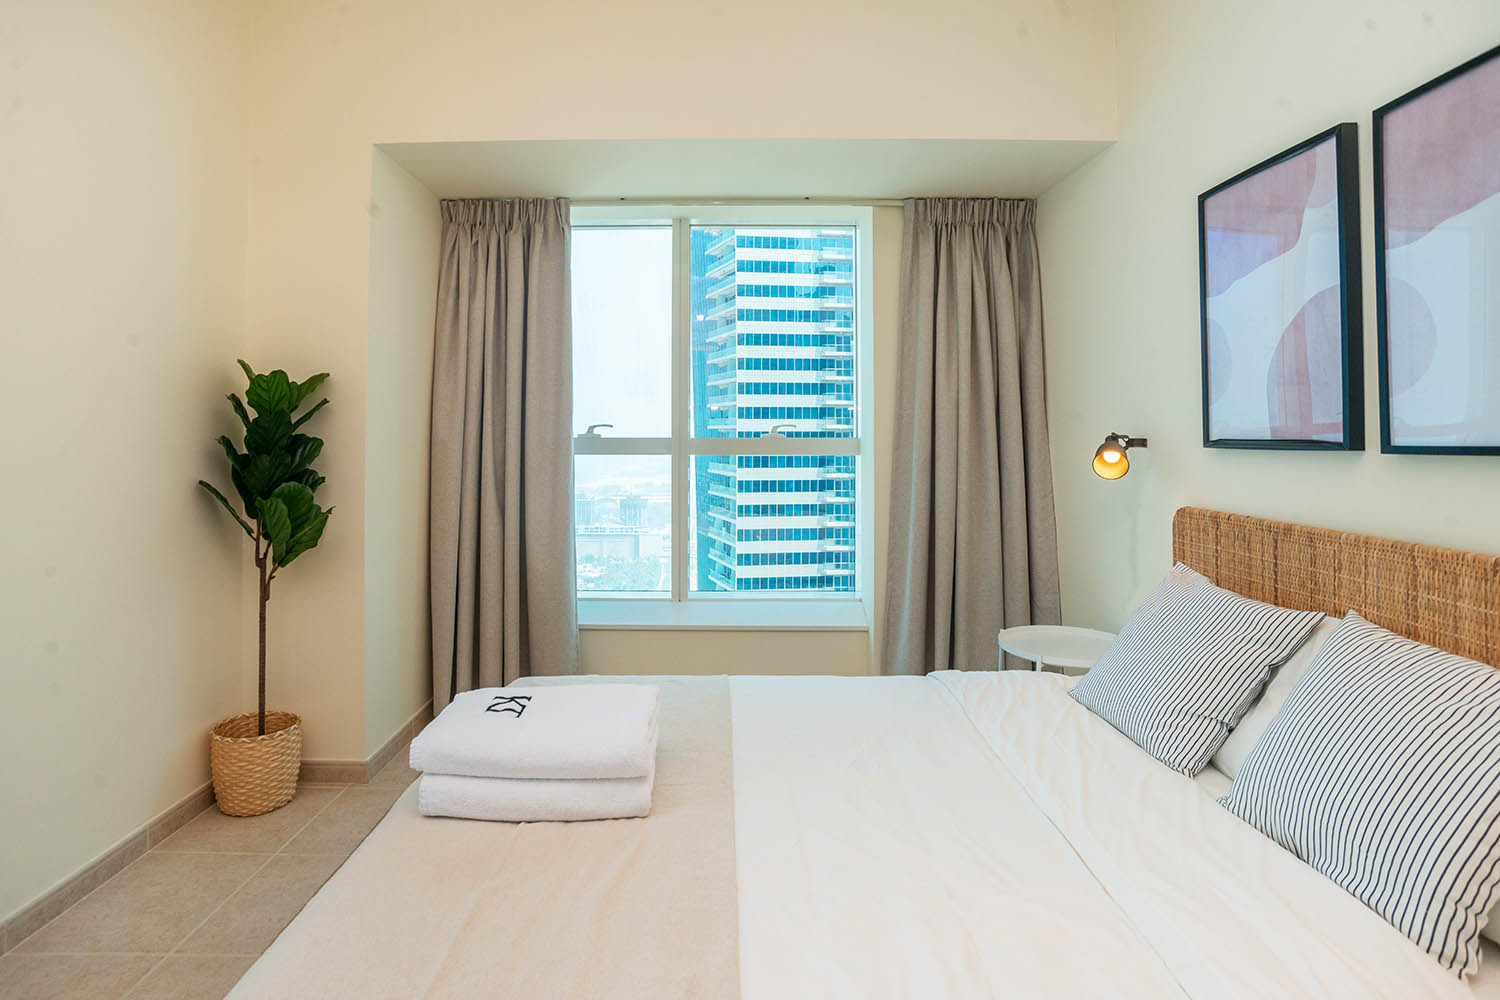 kennedy towers dubai marina elite residence bedroom view right